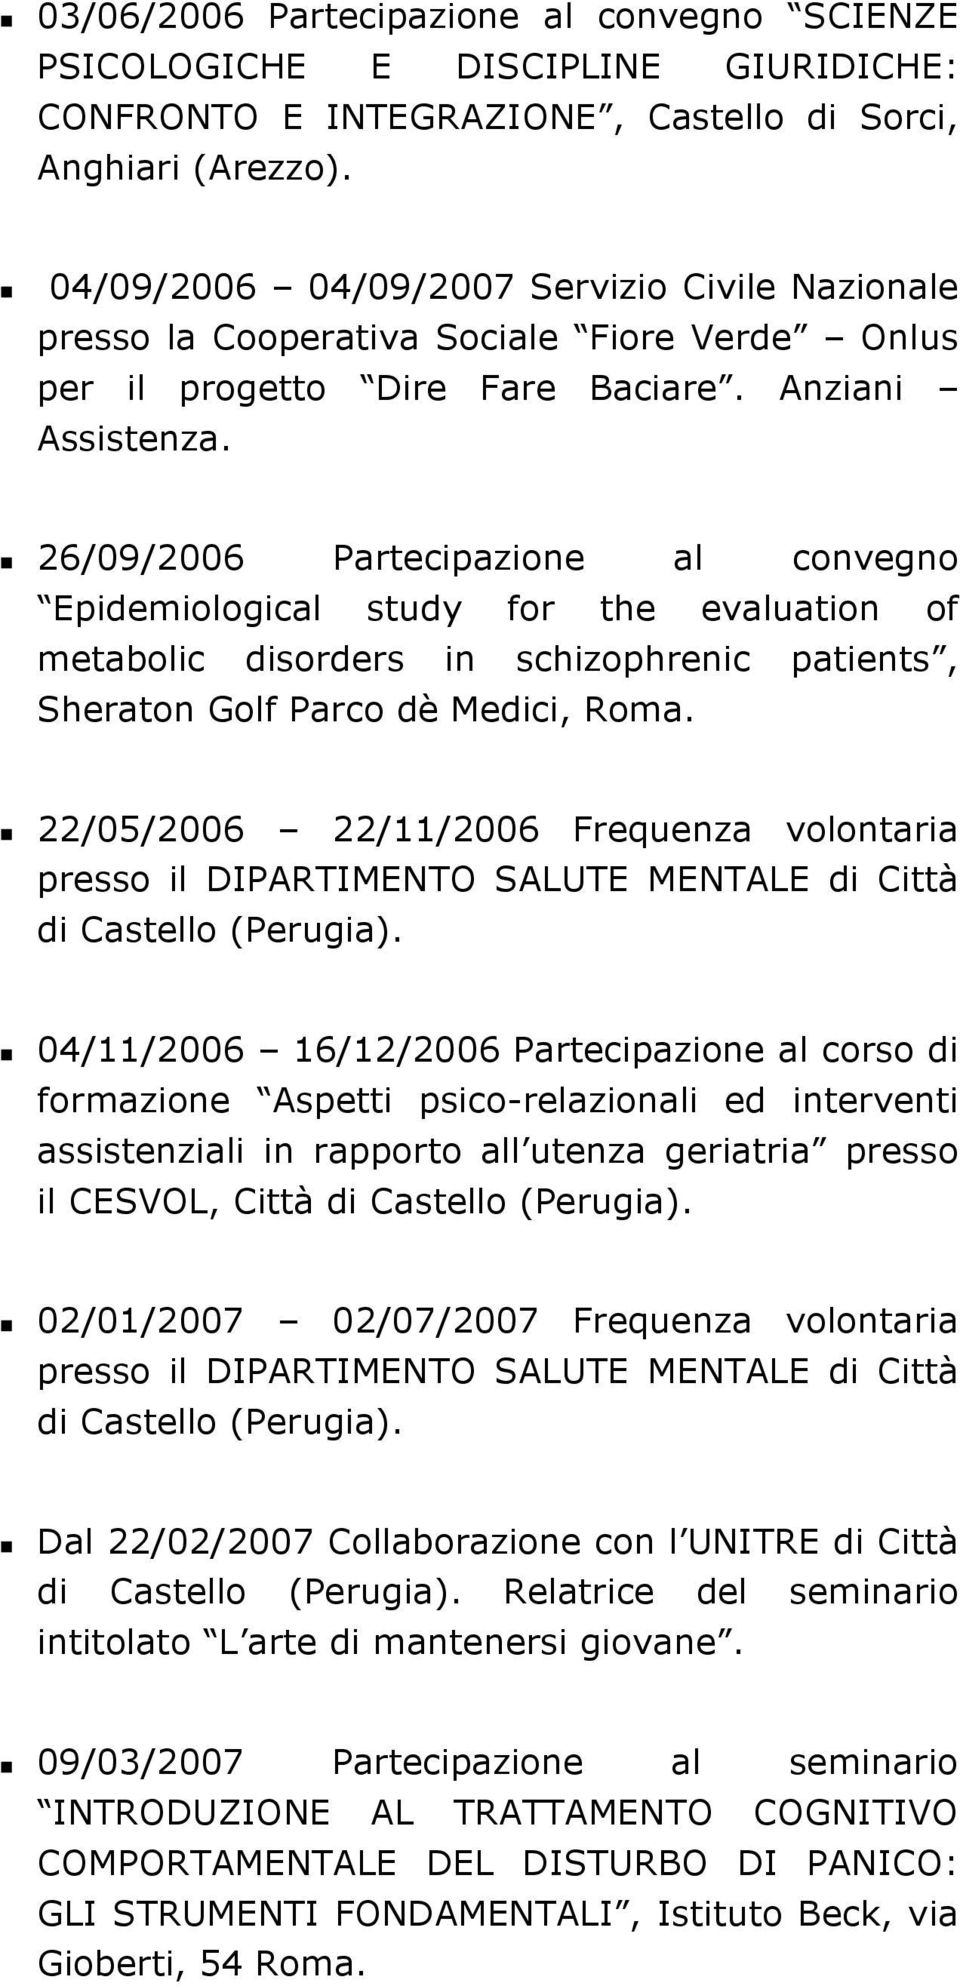 26/09/2006 Partecipazione al convegno Epidemiological study for the evaluation of metabolic disorders in schizophrenic patients, Sheraton Golf Parco dè Medici, Roma.